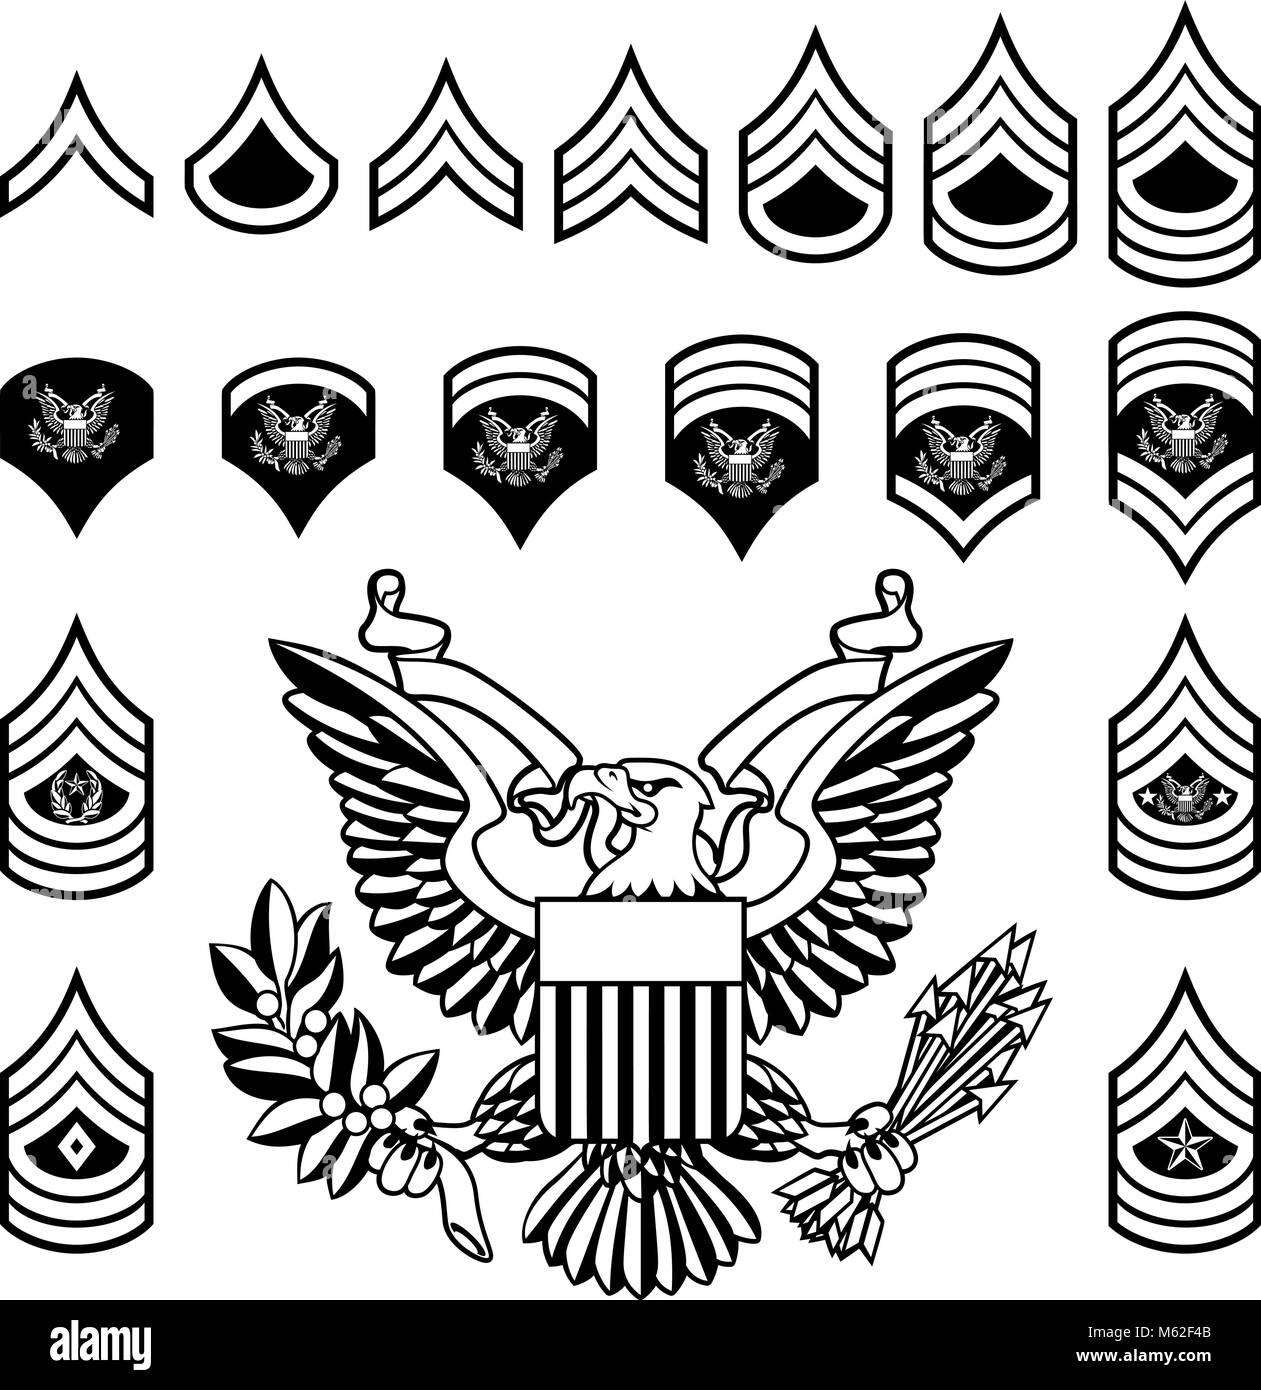 Rank And Insignia Stock Photos Rank And Insignia Stock Images Alamy